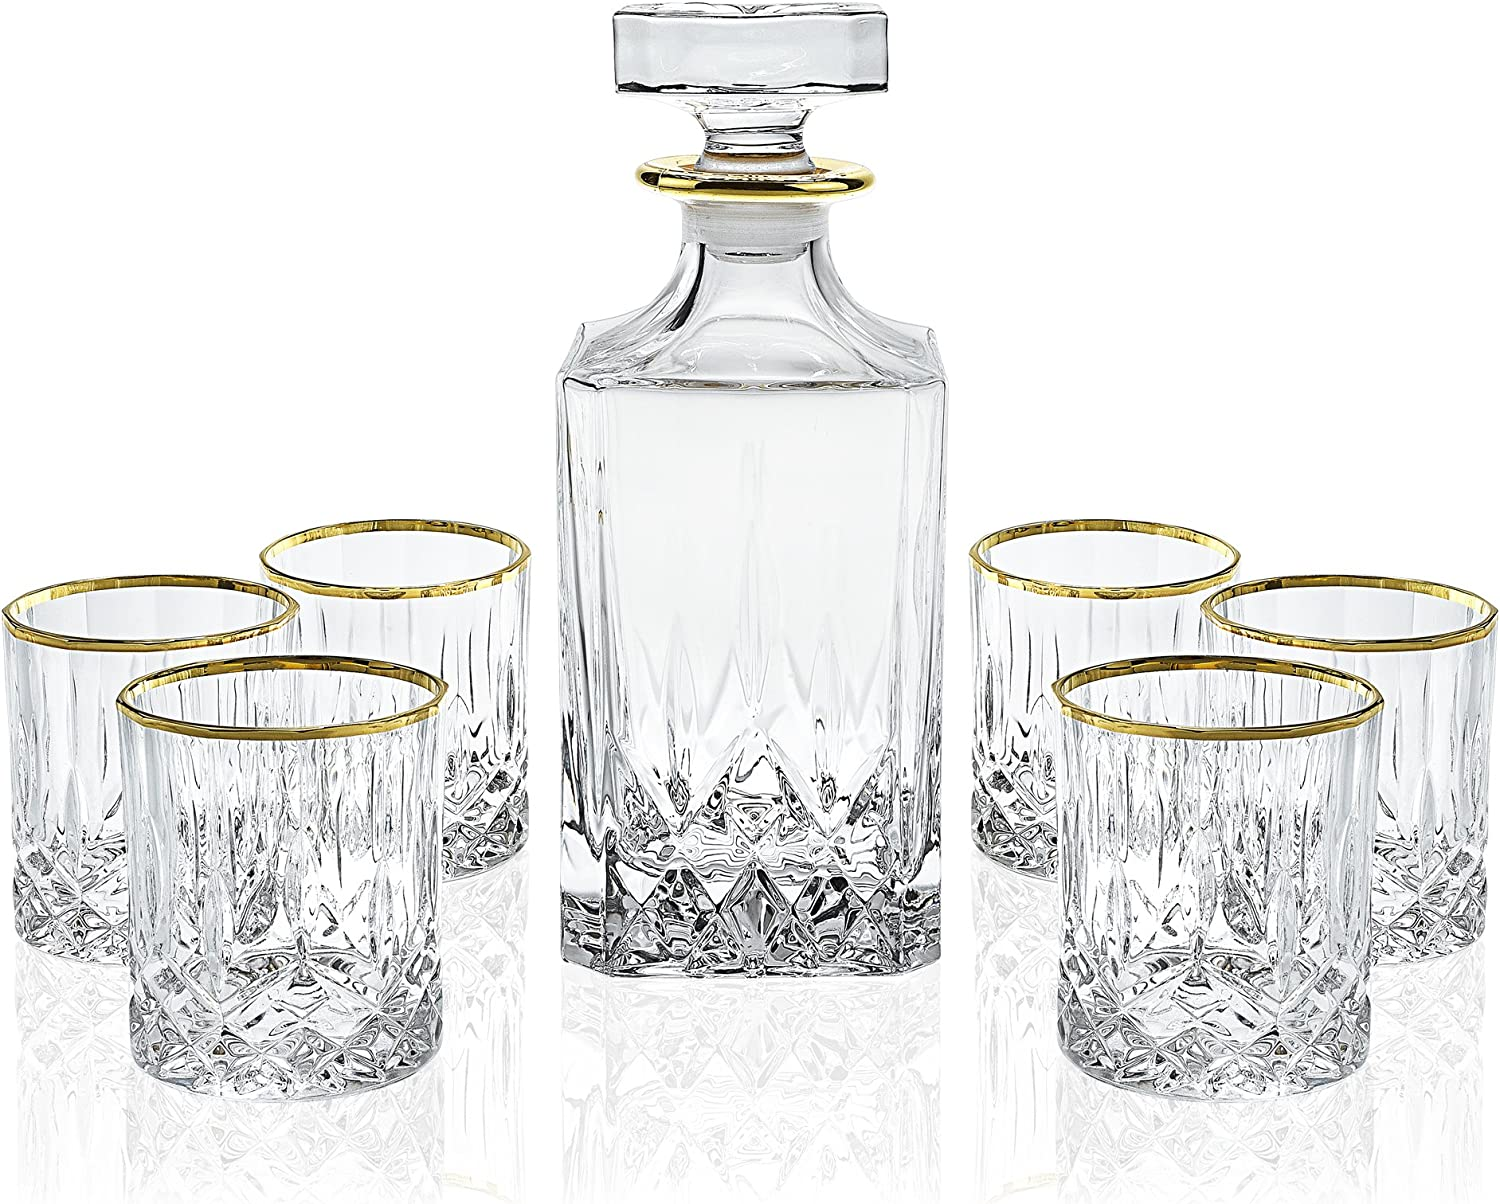 Elegant Manhattan Style Crystal Liquor Whiskey And Wine Decanter Set Irish Cut 7 Piece Set 1 Decanter 6 Old Fashioned 6 Oz Dof Glasses With 24k Gold Trim Amazon Co Uk Kitchen Home